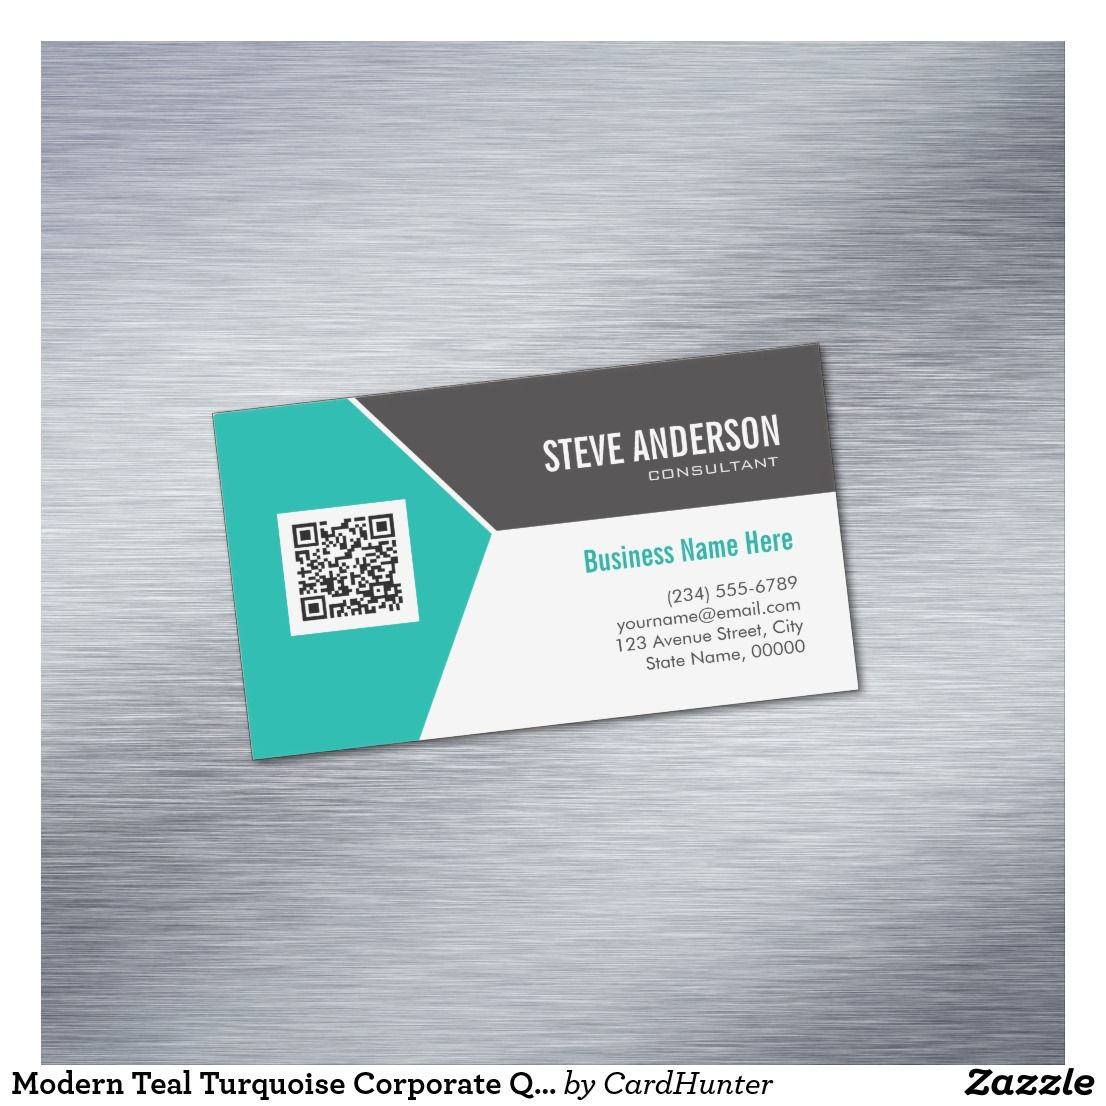 Modern Teal Turquoise Corporate QR Code Logo Magnetic Business Card ...